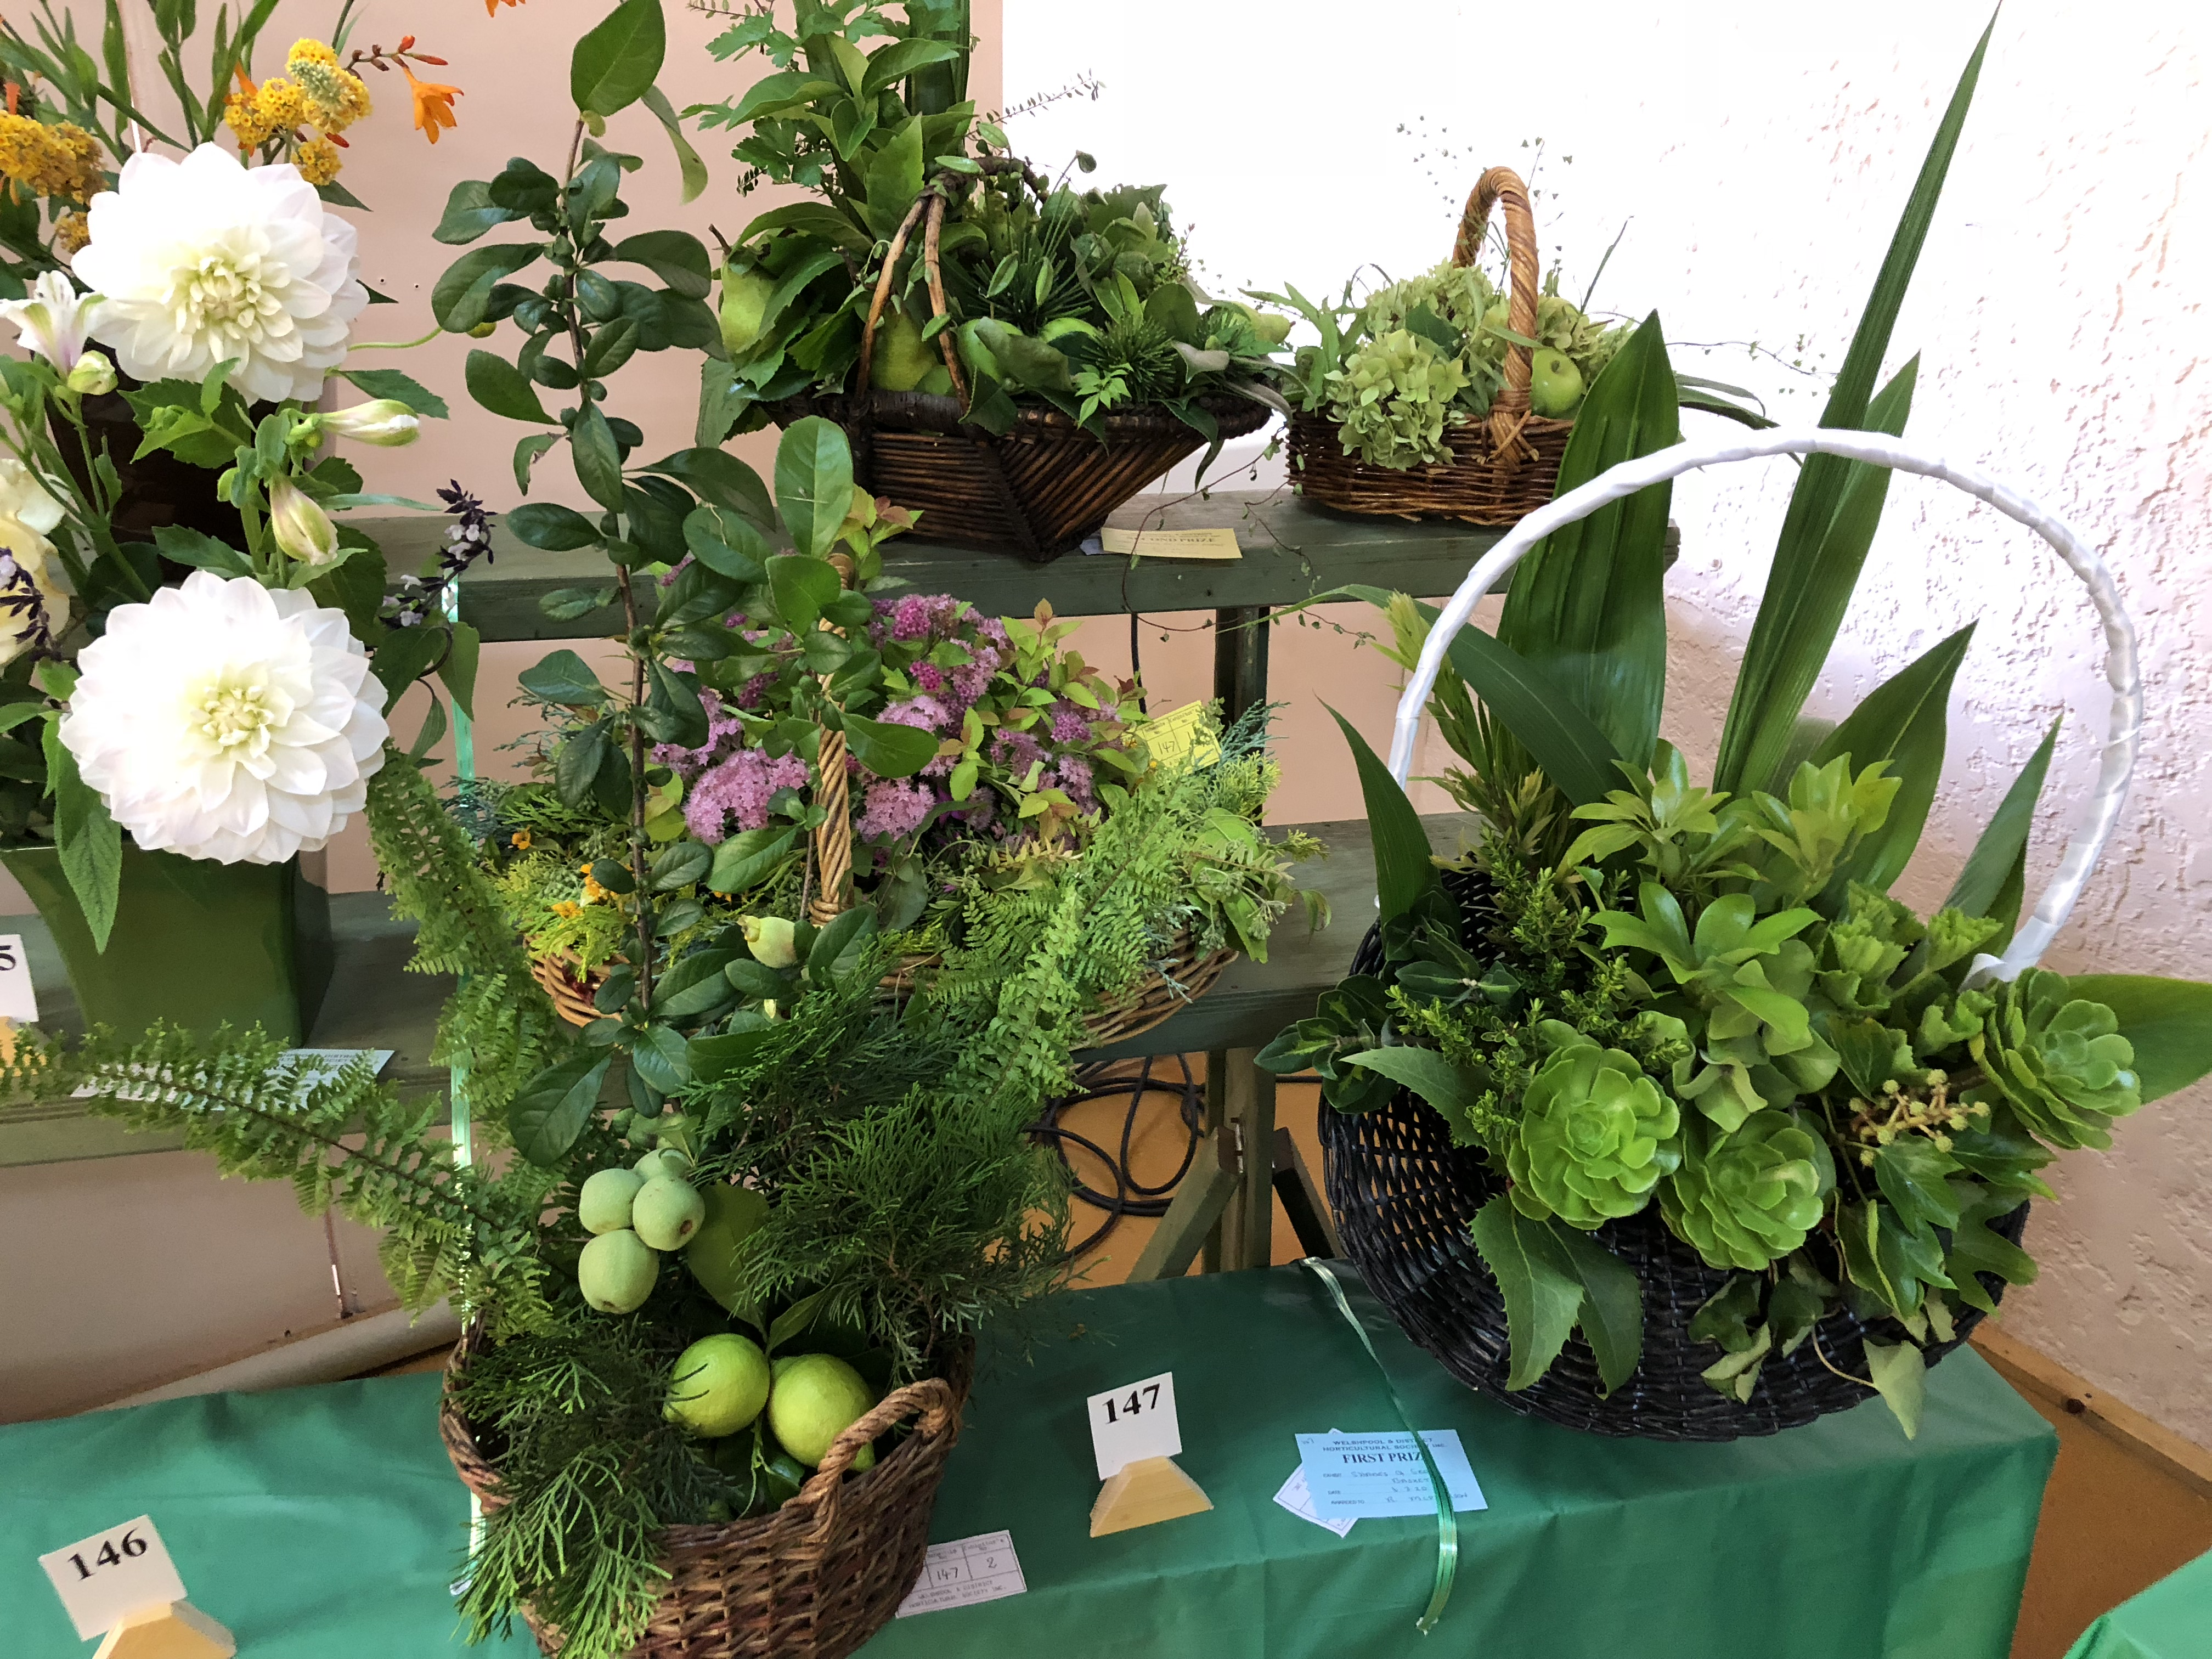 'The Beauty of Leaves' was this years theme for the Autumn Flower Show